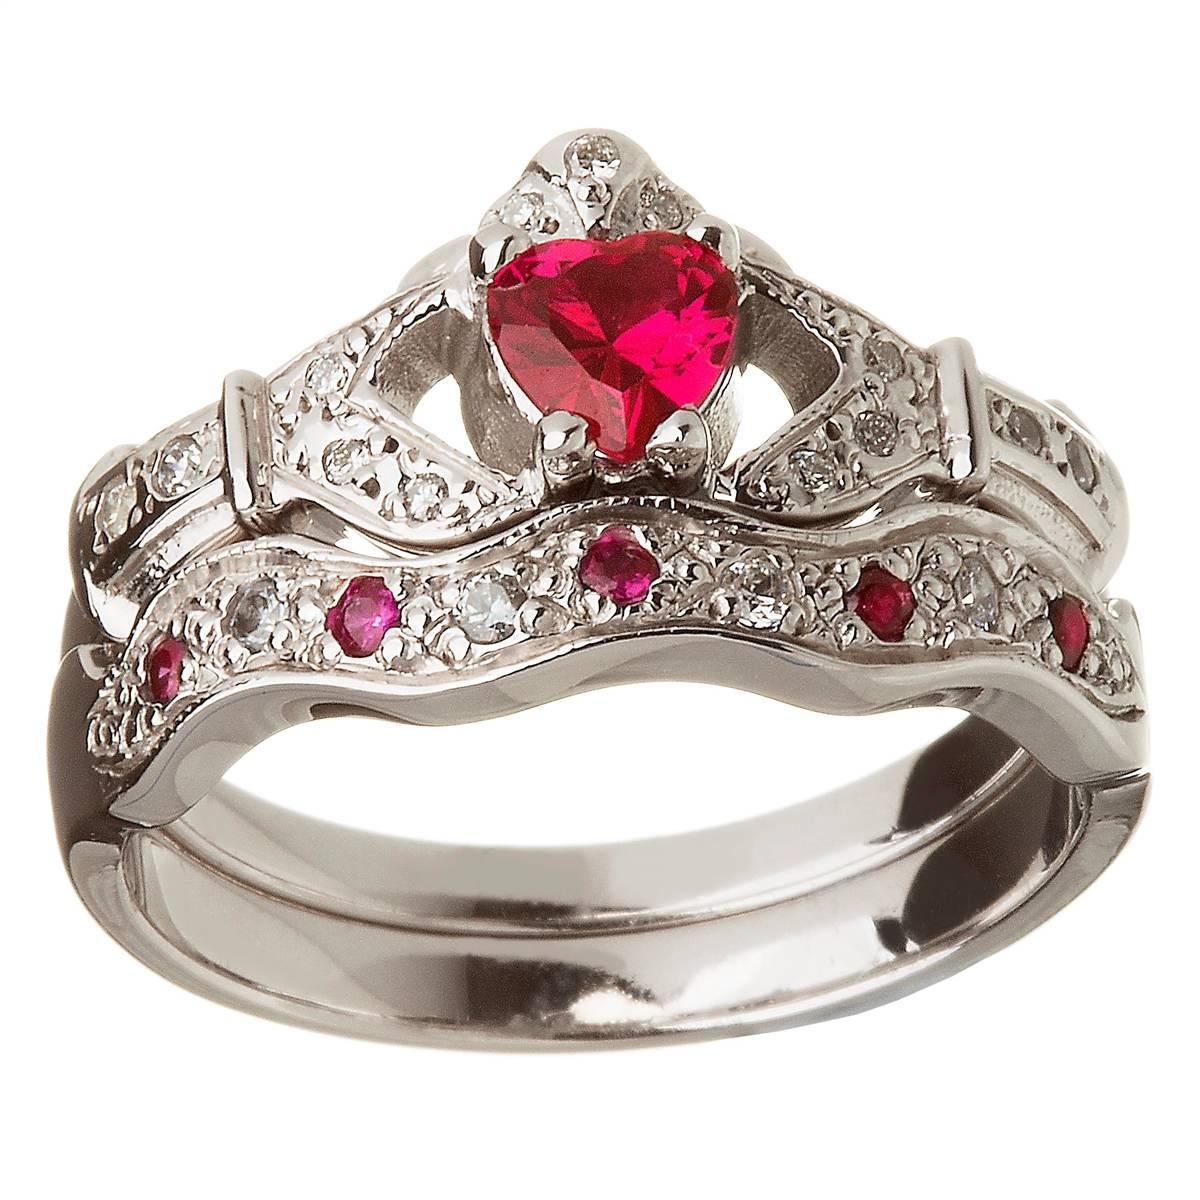 14K White Gold Ruby Set Heart Claddagh Ring & Wedding Ring Set With Diamond Claddagh Engagement & Wedding Ring Sets (View 3 of 15)